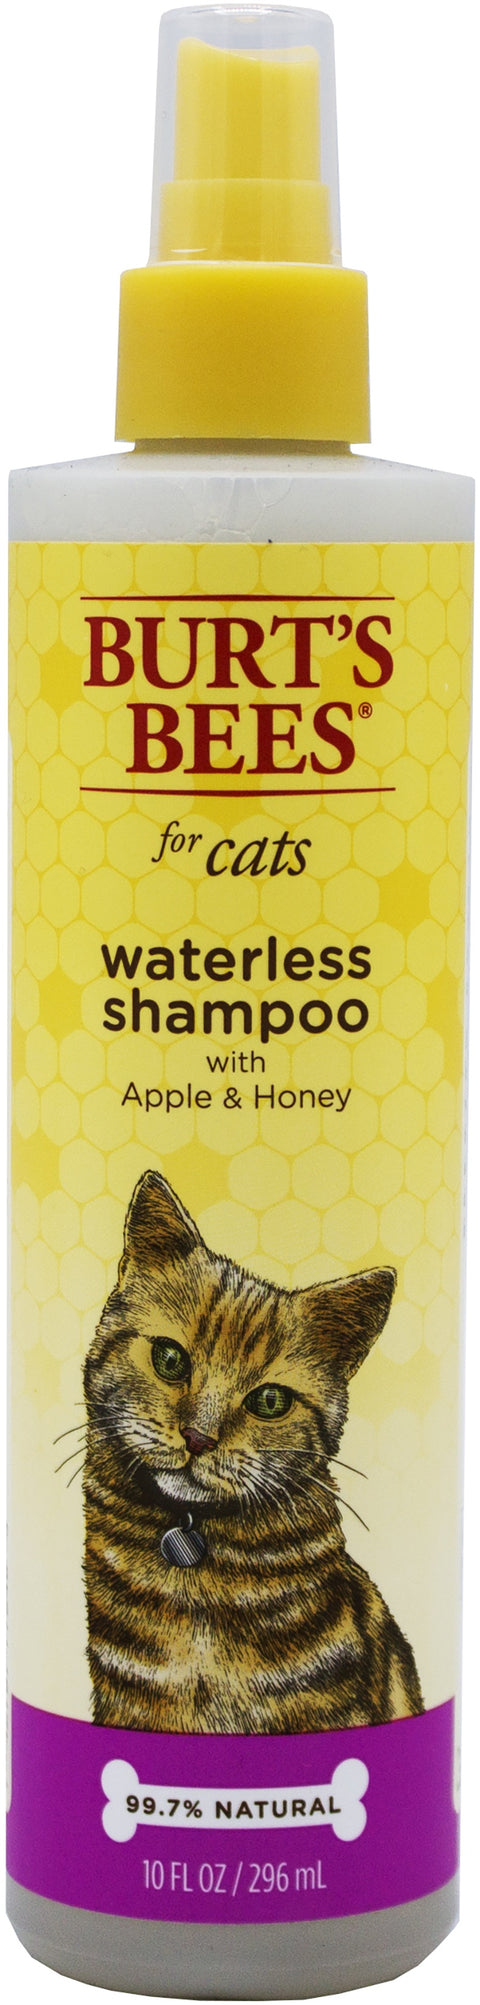 Burt's Bees Cat Shampoo 10oz-Waterless